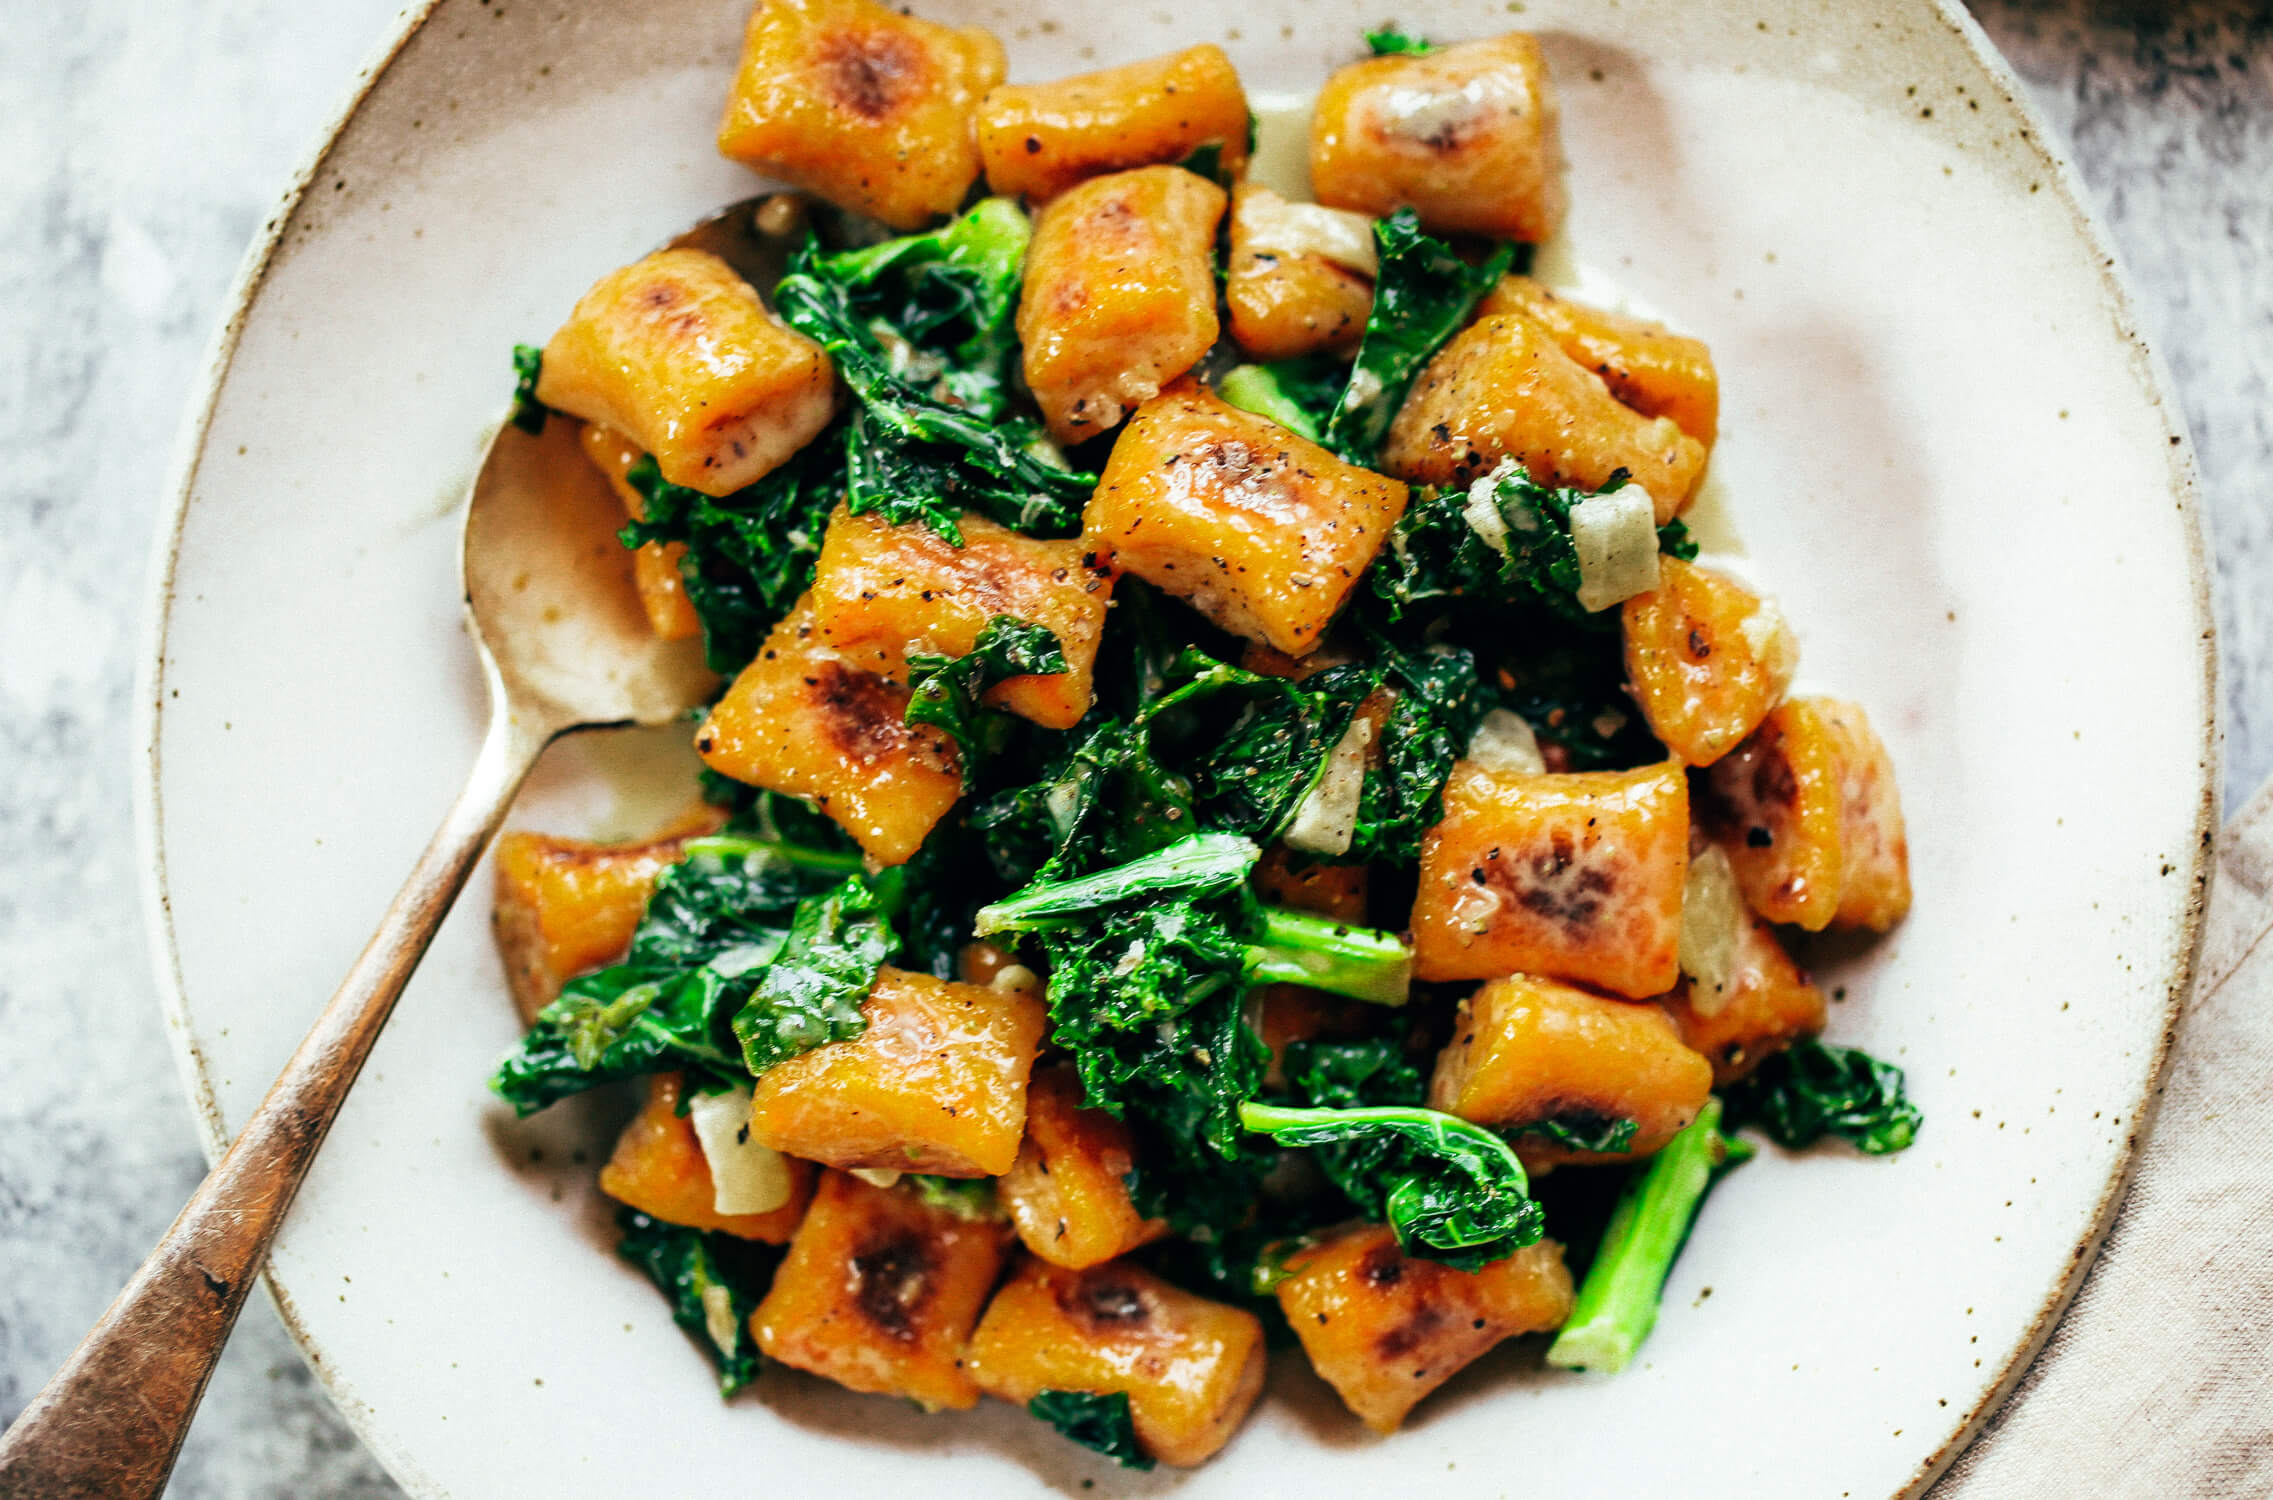 Easy paleo sweet potato gnocchi served with kale sage sauce. Delicious, healthy, family meal. Soft pillowy gnocchi made with sweet potato. Easy whole30 dinner recipes. Easy whole30 dinner recipes. Whole30 recipes. Whole30 lunch. Whole30 meal planning. Whole30 meal prep. Healthy paleo meals. Healthy Whole30 recipes. Easy Whole30 recipes. Easy whole30 dinner recipes.